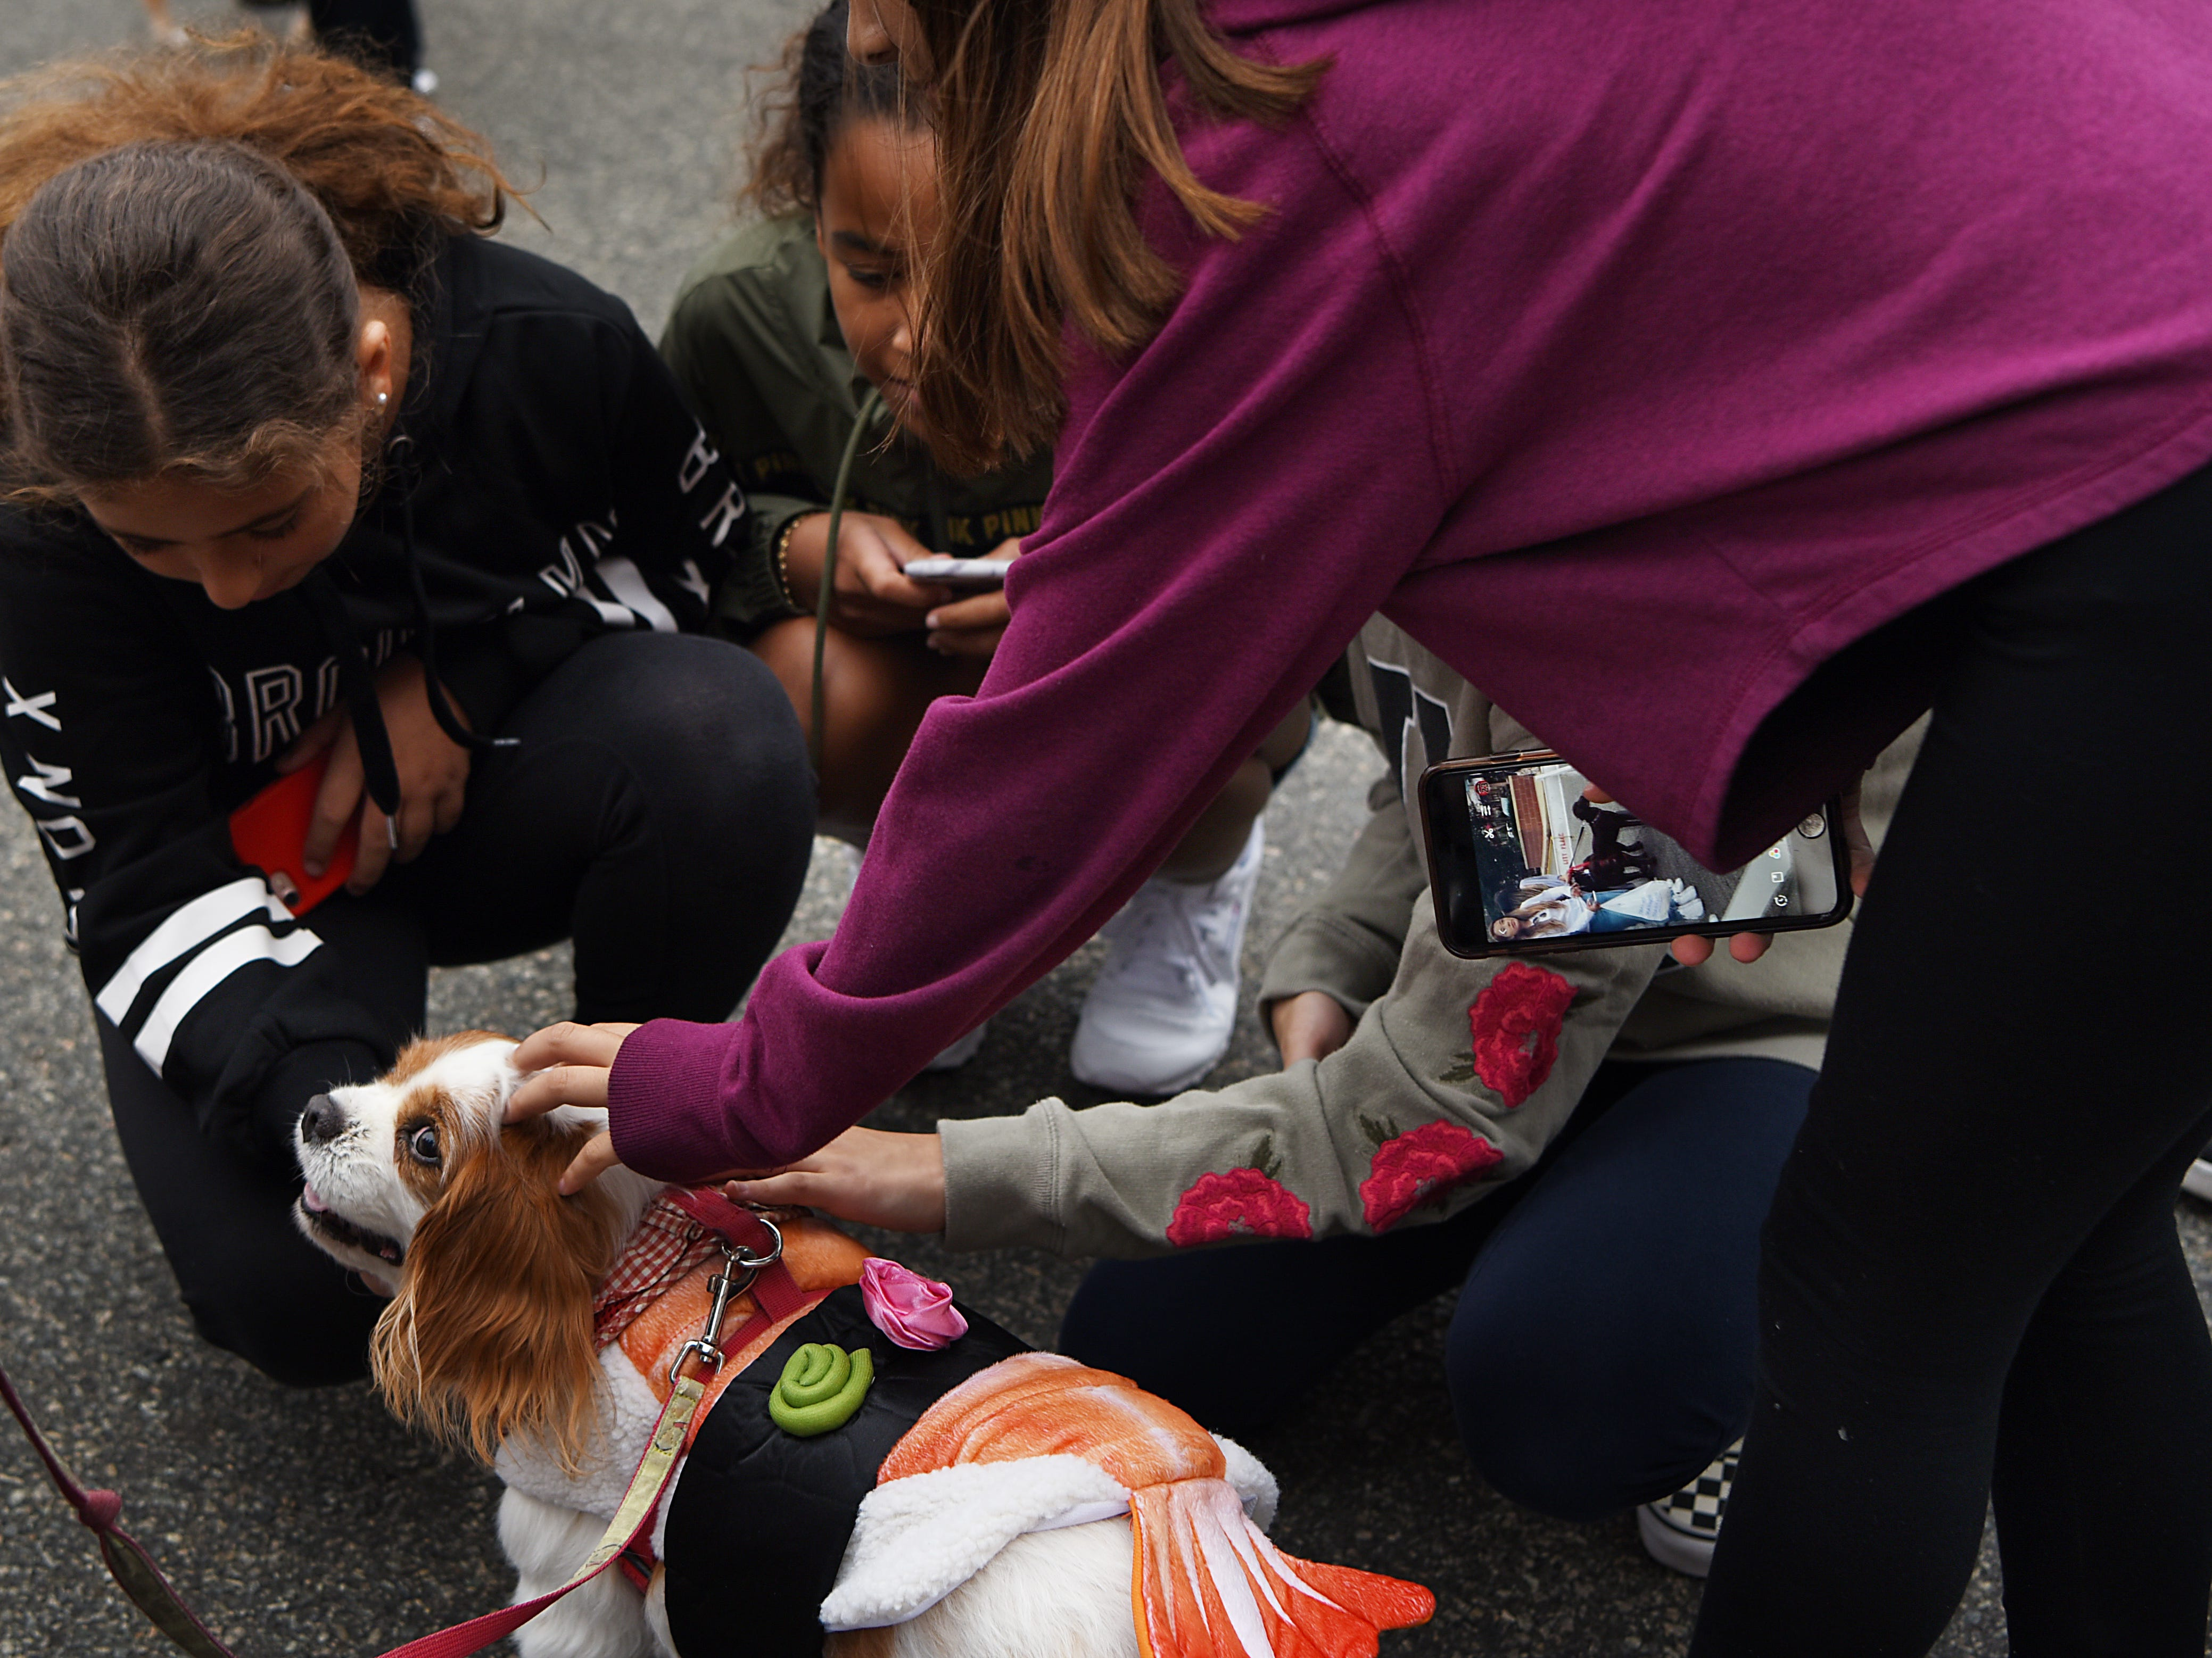 Coco Puff, a ten year old Cavalier King Charles Spaniel from Guttenberg, gets a lot of attention in her sushi costume.  Woofstock 2018, a benefit for Bergen County animal rescue organizations, at City Place in Edgewater on Saturday September 8, 2018.